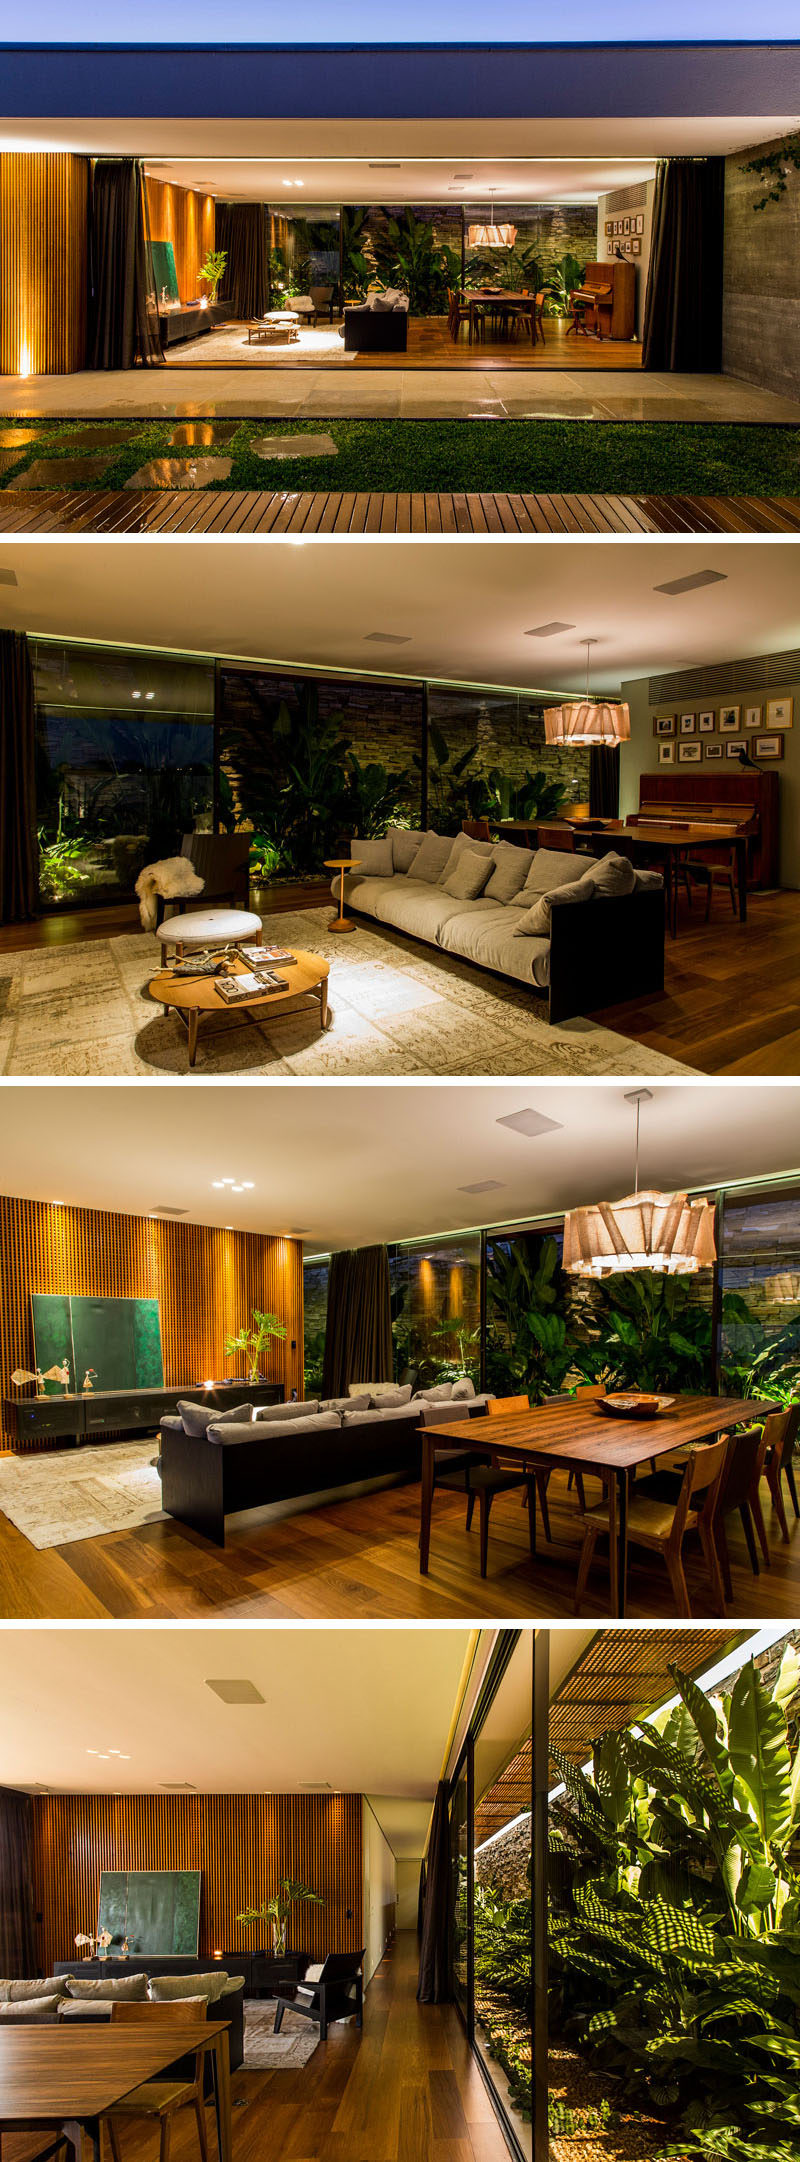 Just to the side of this swimming pool is the living room and another dining area of this home. The open floor plan also opens up on the other side to a section of tropical plants.